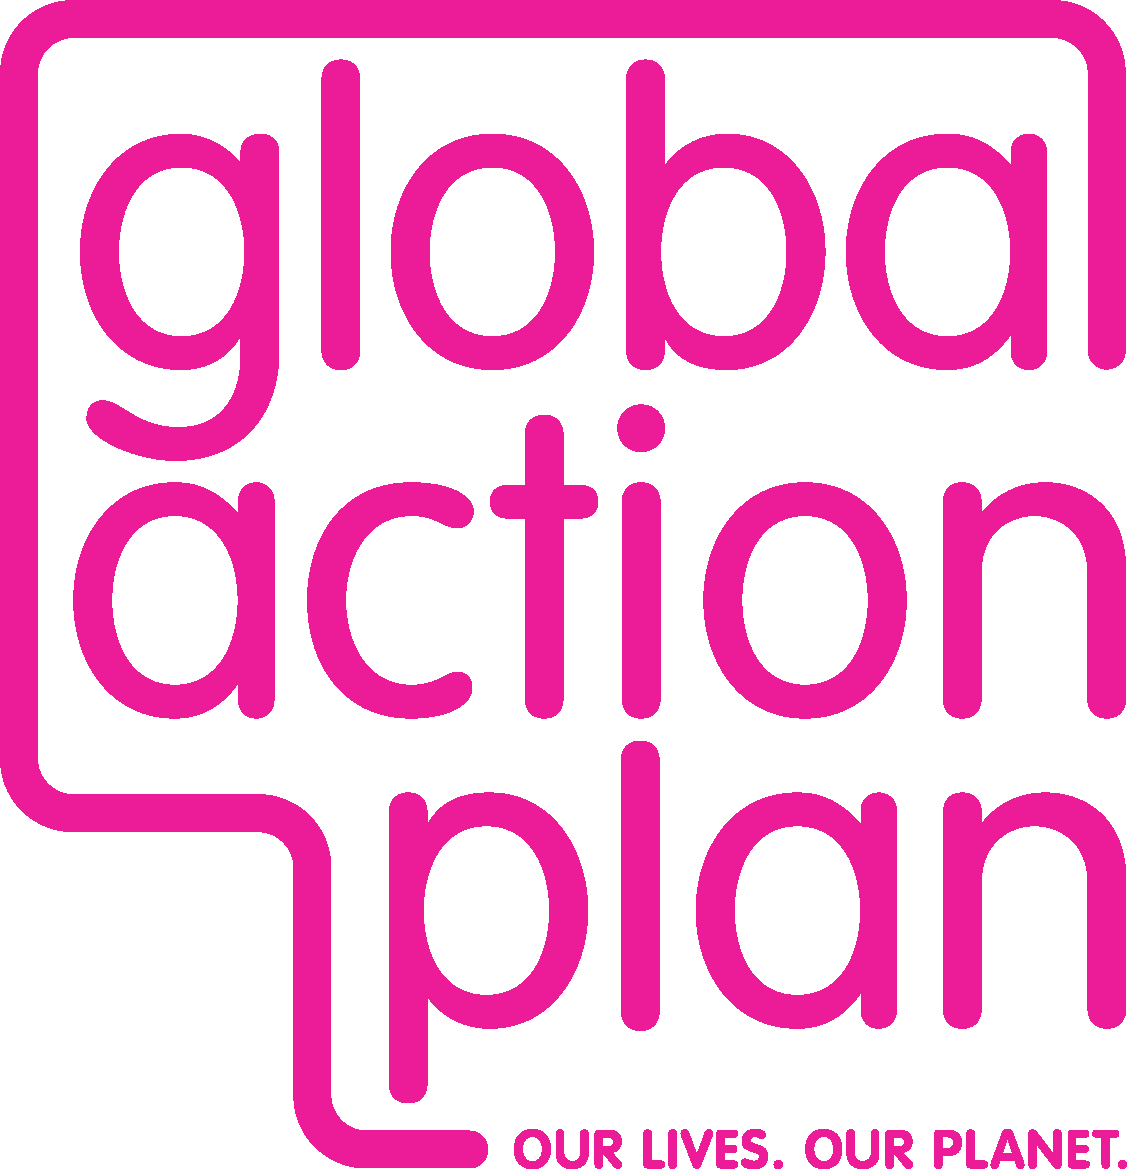 Global Action Plan